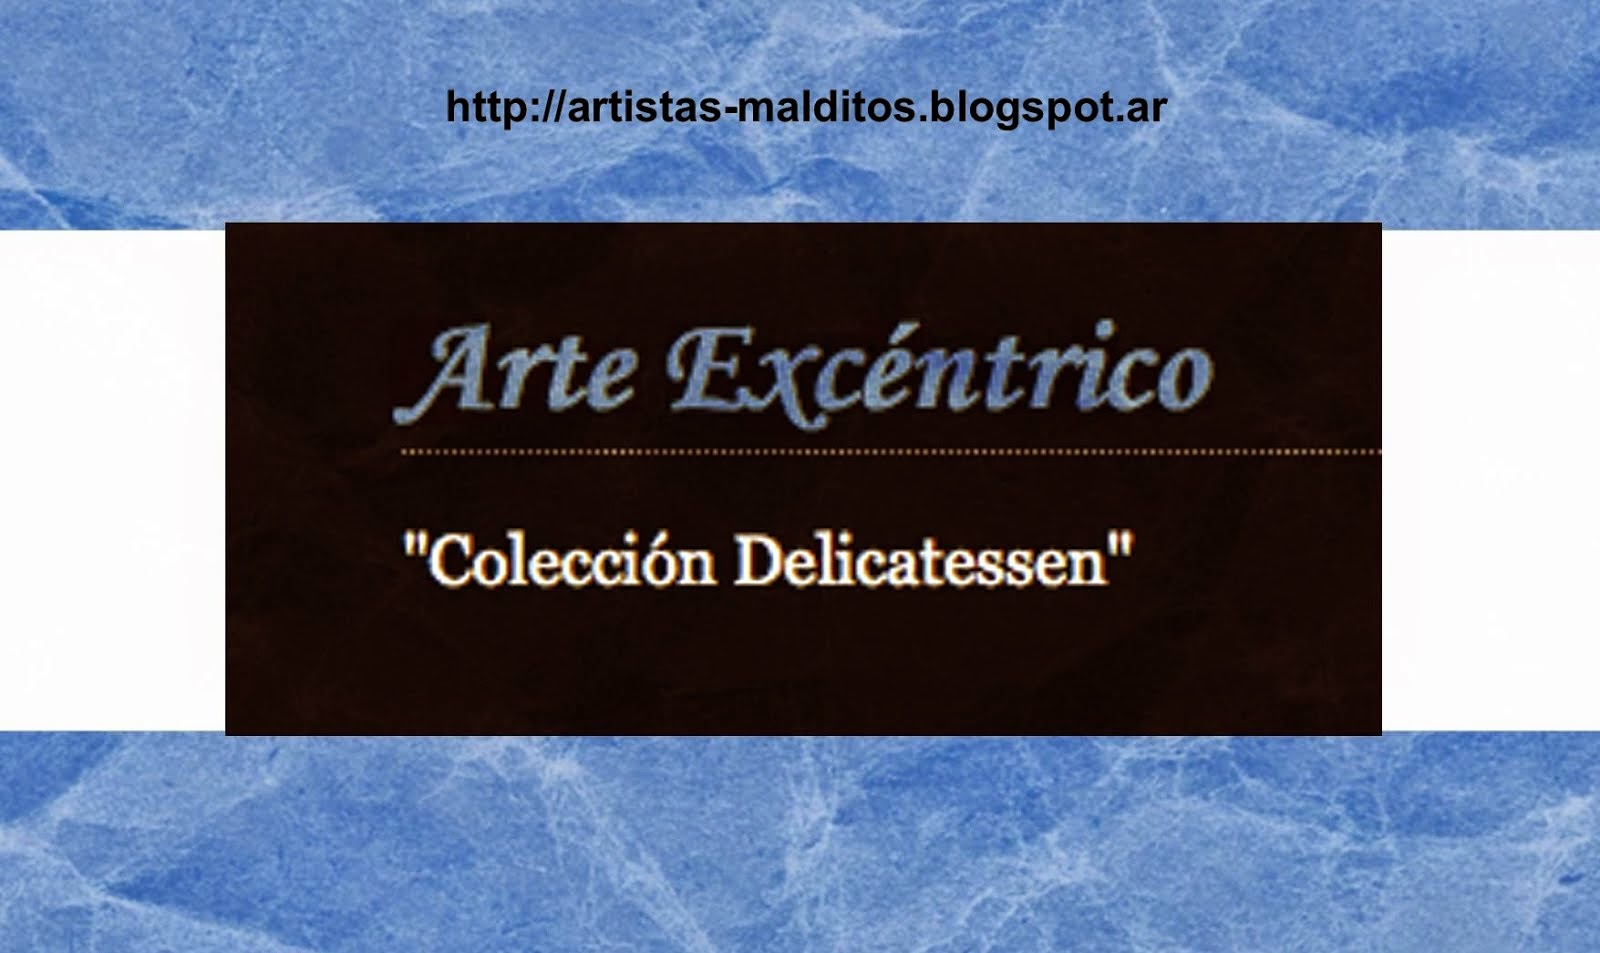 artistas-malditos.blogspot